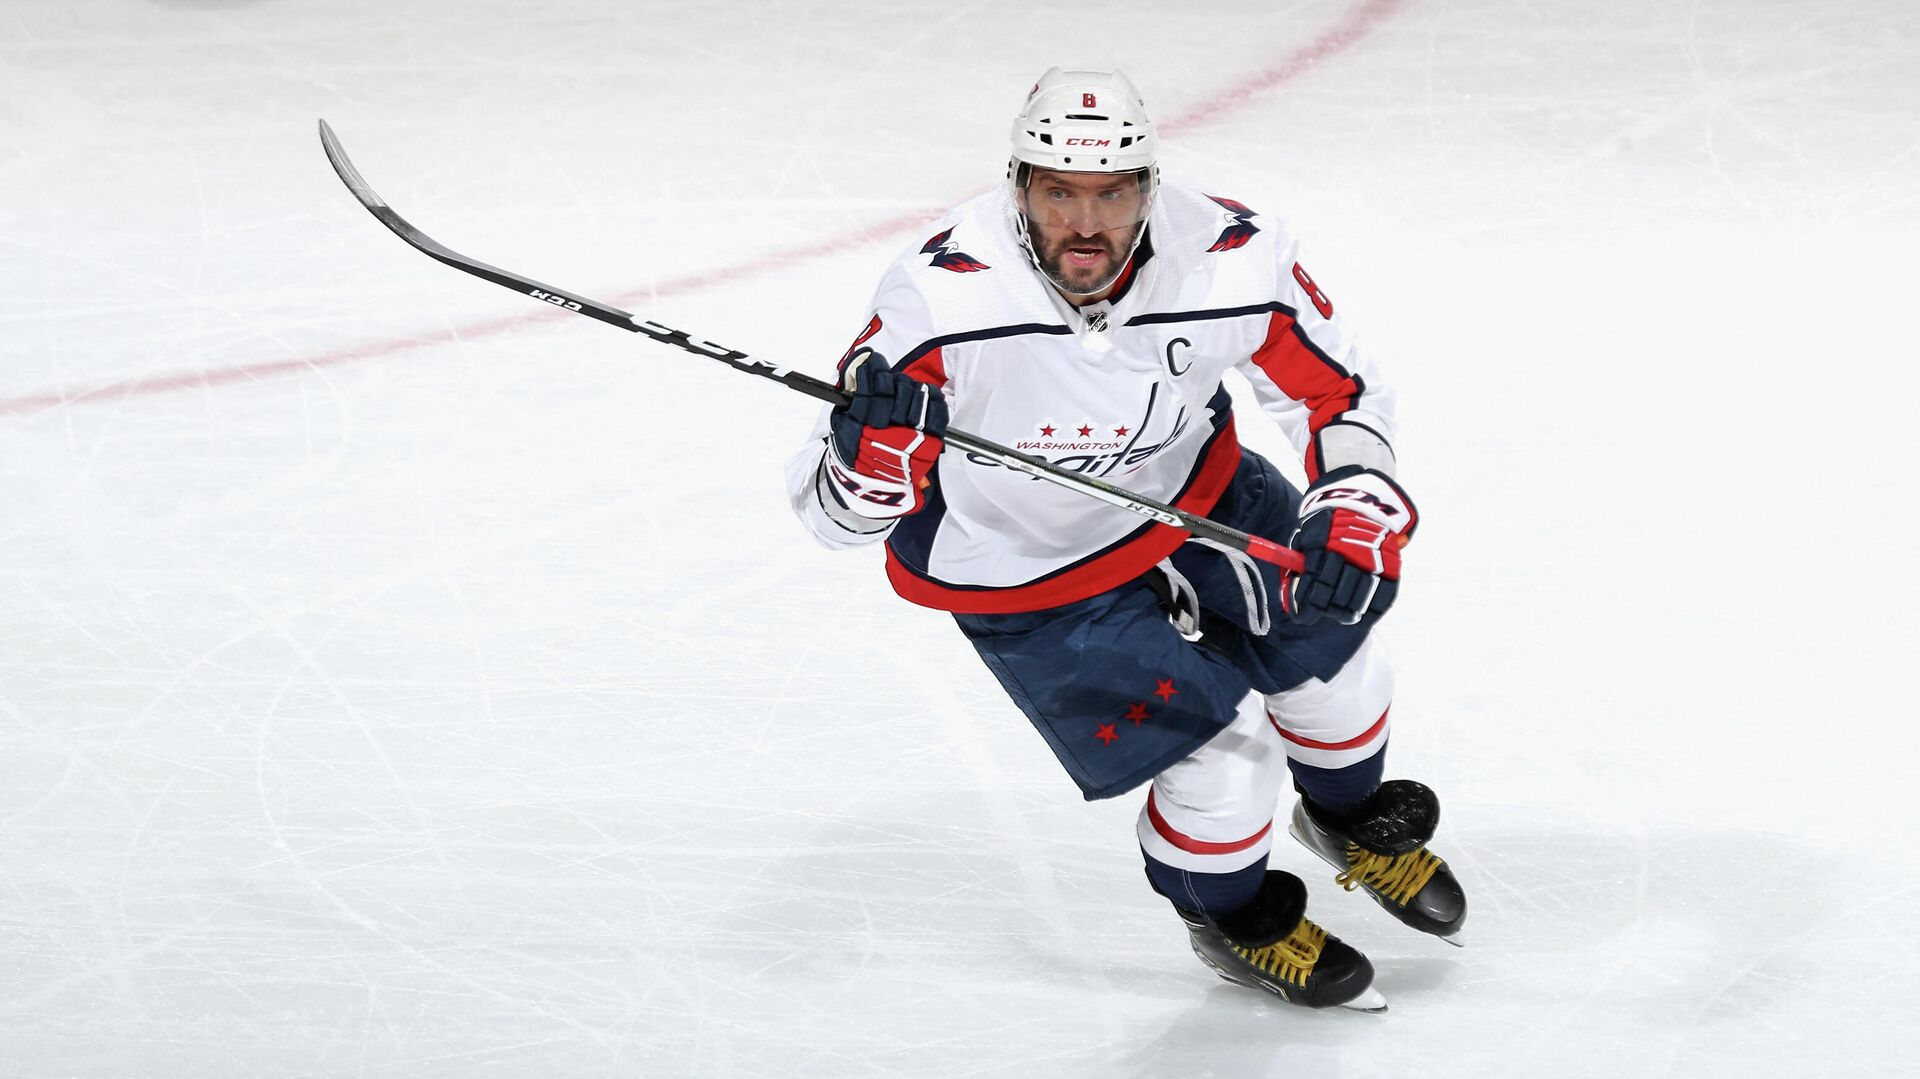 NEWARK, NEW JERSEY - APRIL 02: Alex Ovechkin #8 of the Washington Capitals skates against the New Jersey Devils on April 02, 2021 in Newark, New Jersey.   Bruce Bennett/Getty Images/AFP (Photo by BRUCE BENNETT / GETTY IMAGES NORTH AMERICA / Getty Images via AFP) - РИА Новости, 1920, 05.04.2021